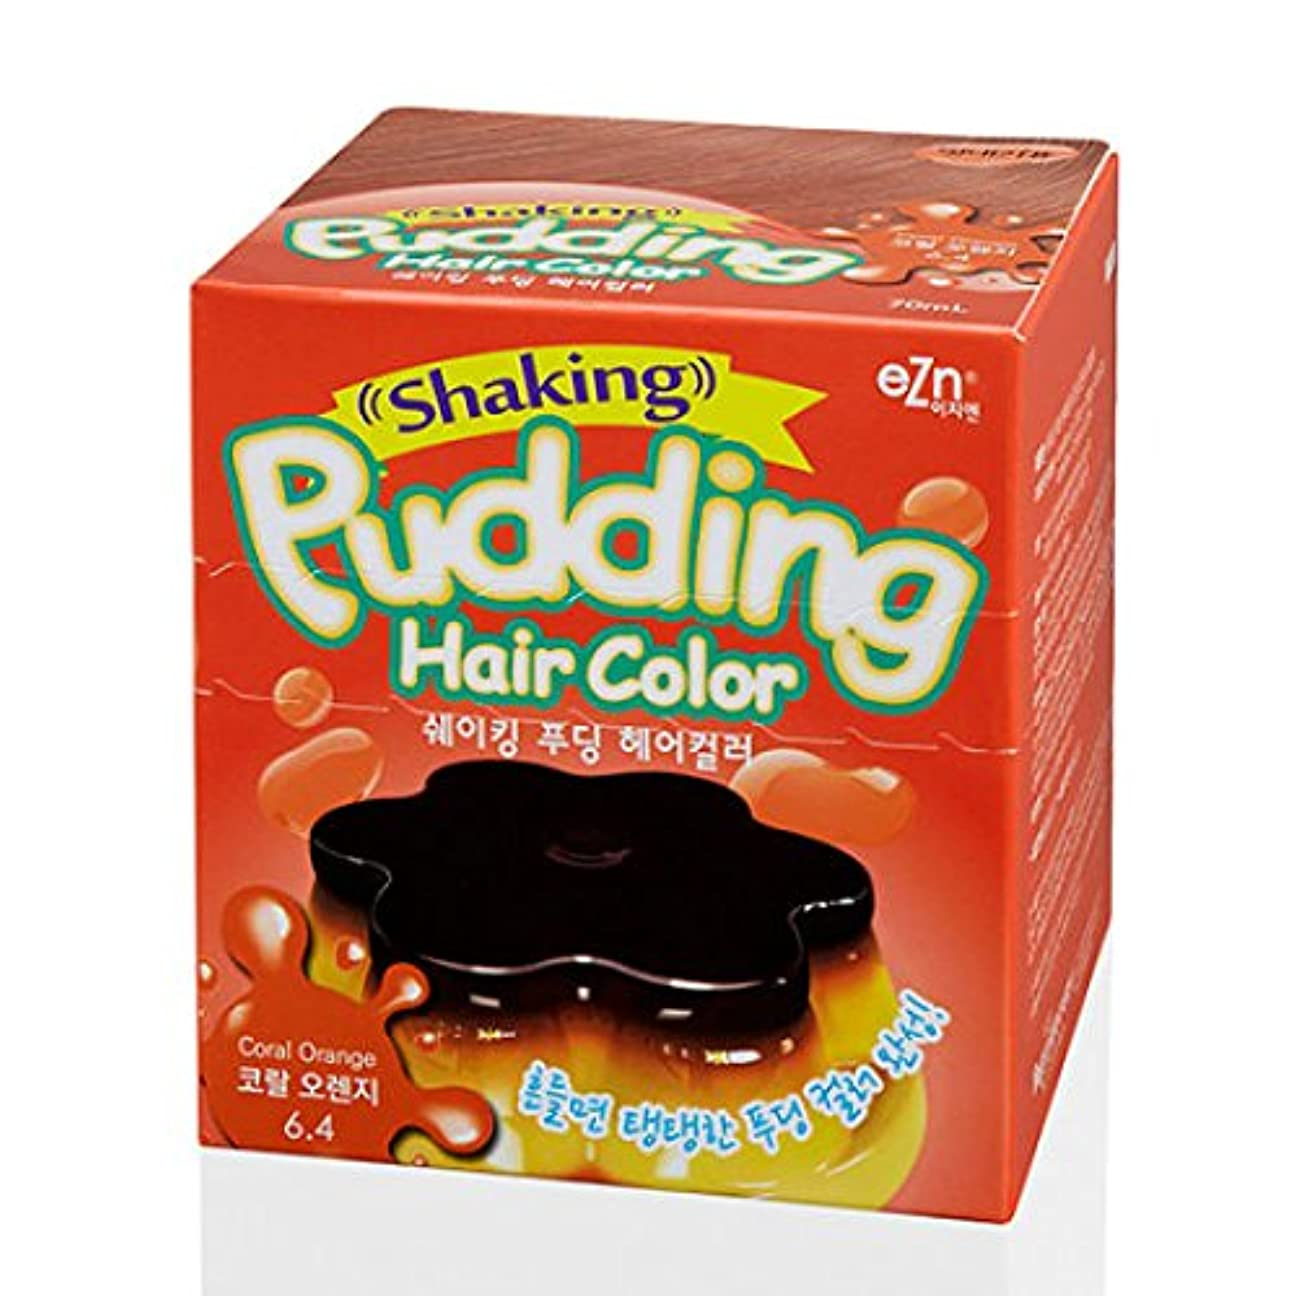 レールニッケル近代化KOREA NO.1 毛染め(hair dyeing) shaking pudding hair color (coral orange) [並行輸入品]